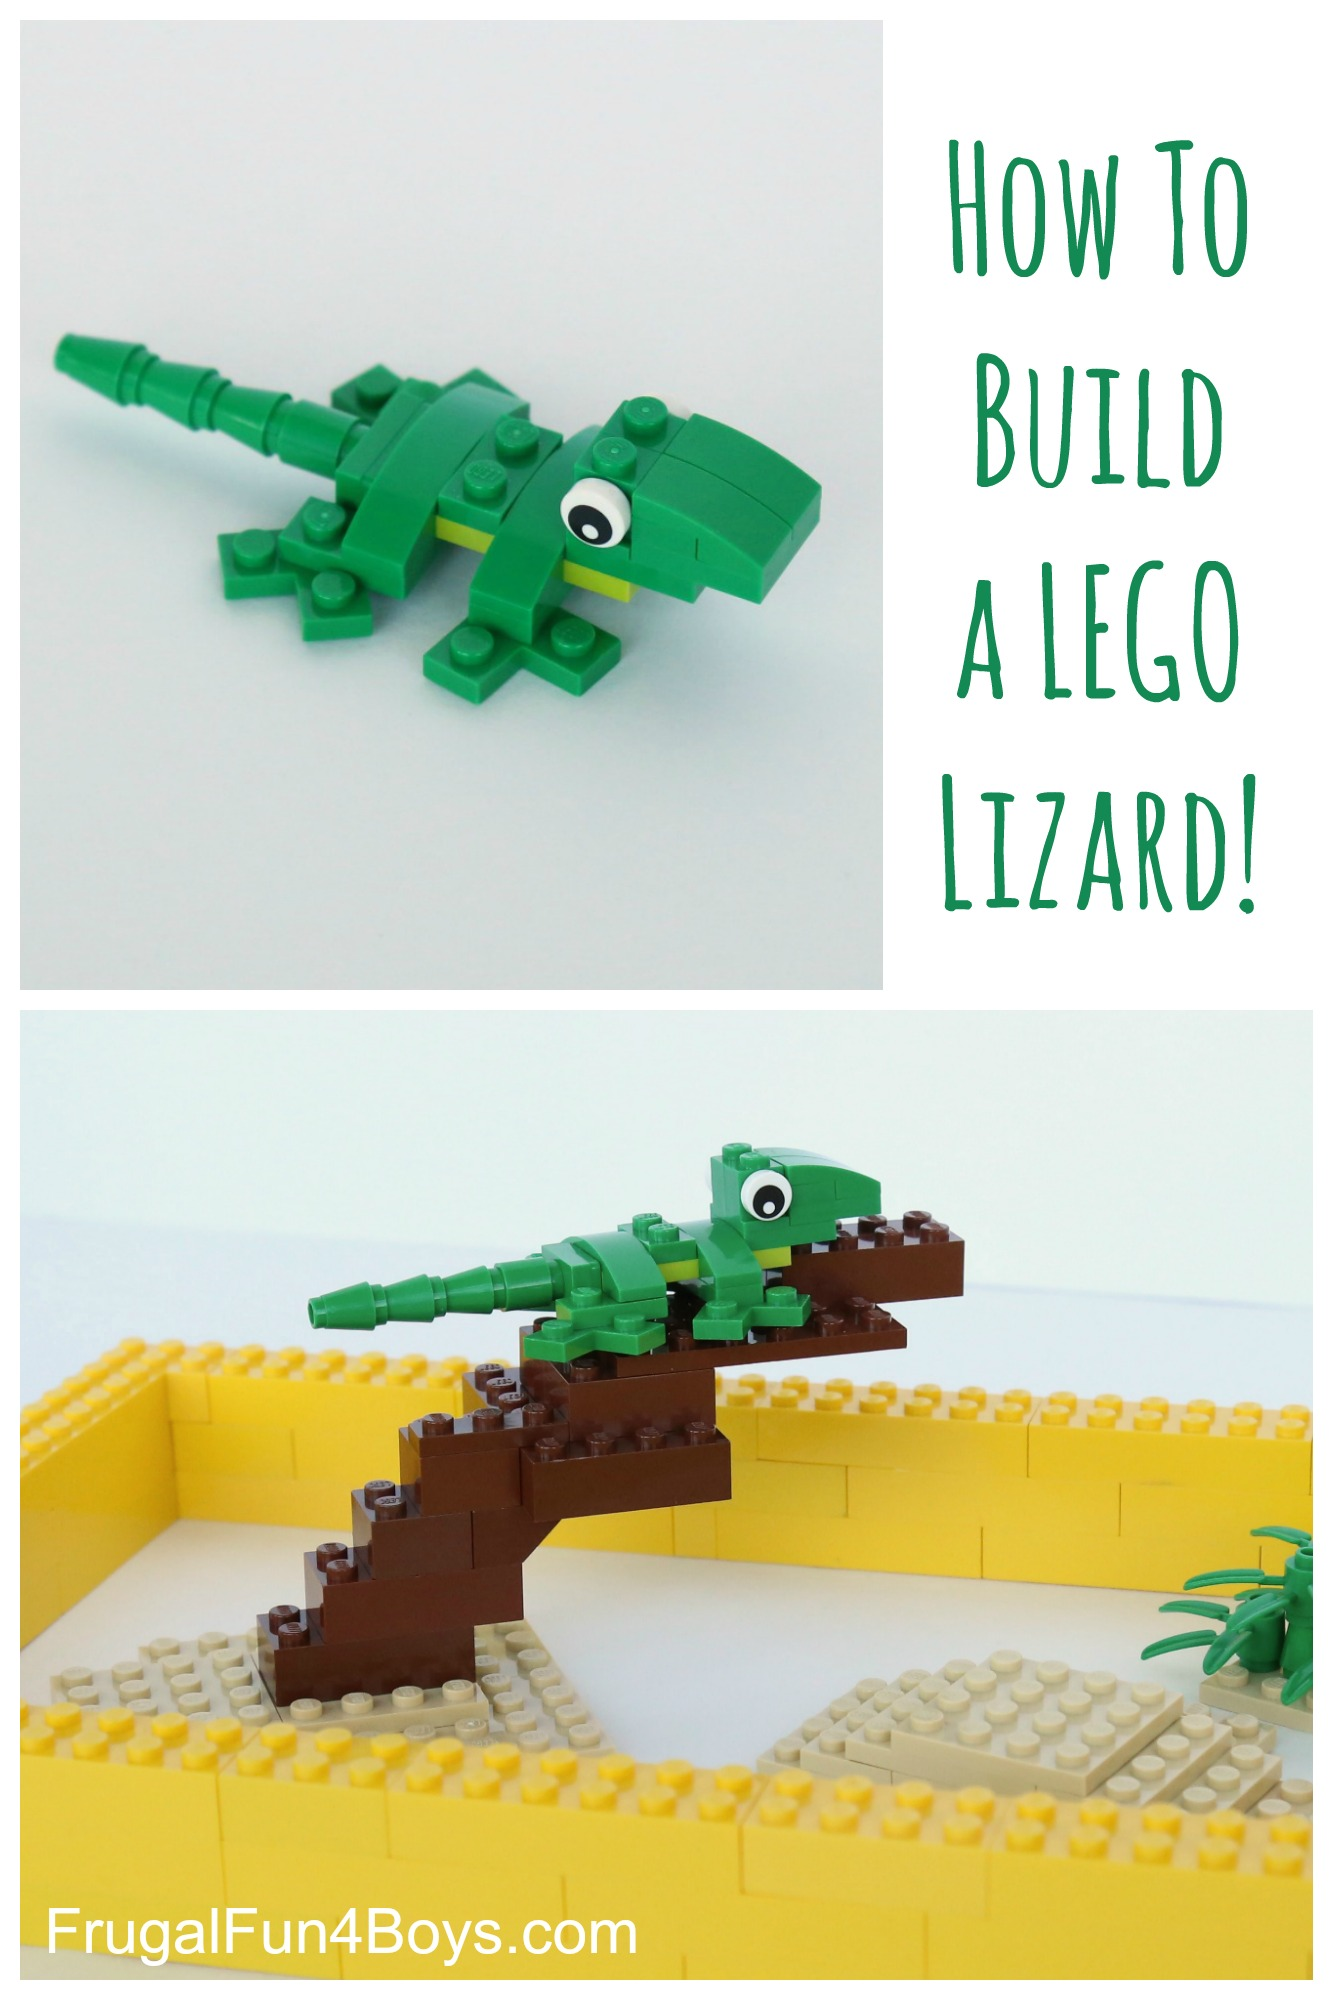 LEGO Lizard Building Instructions